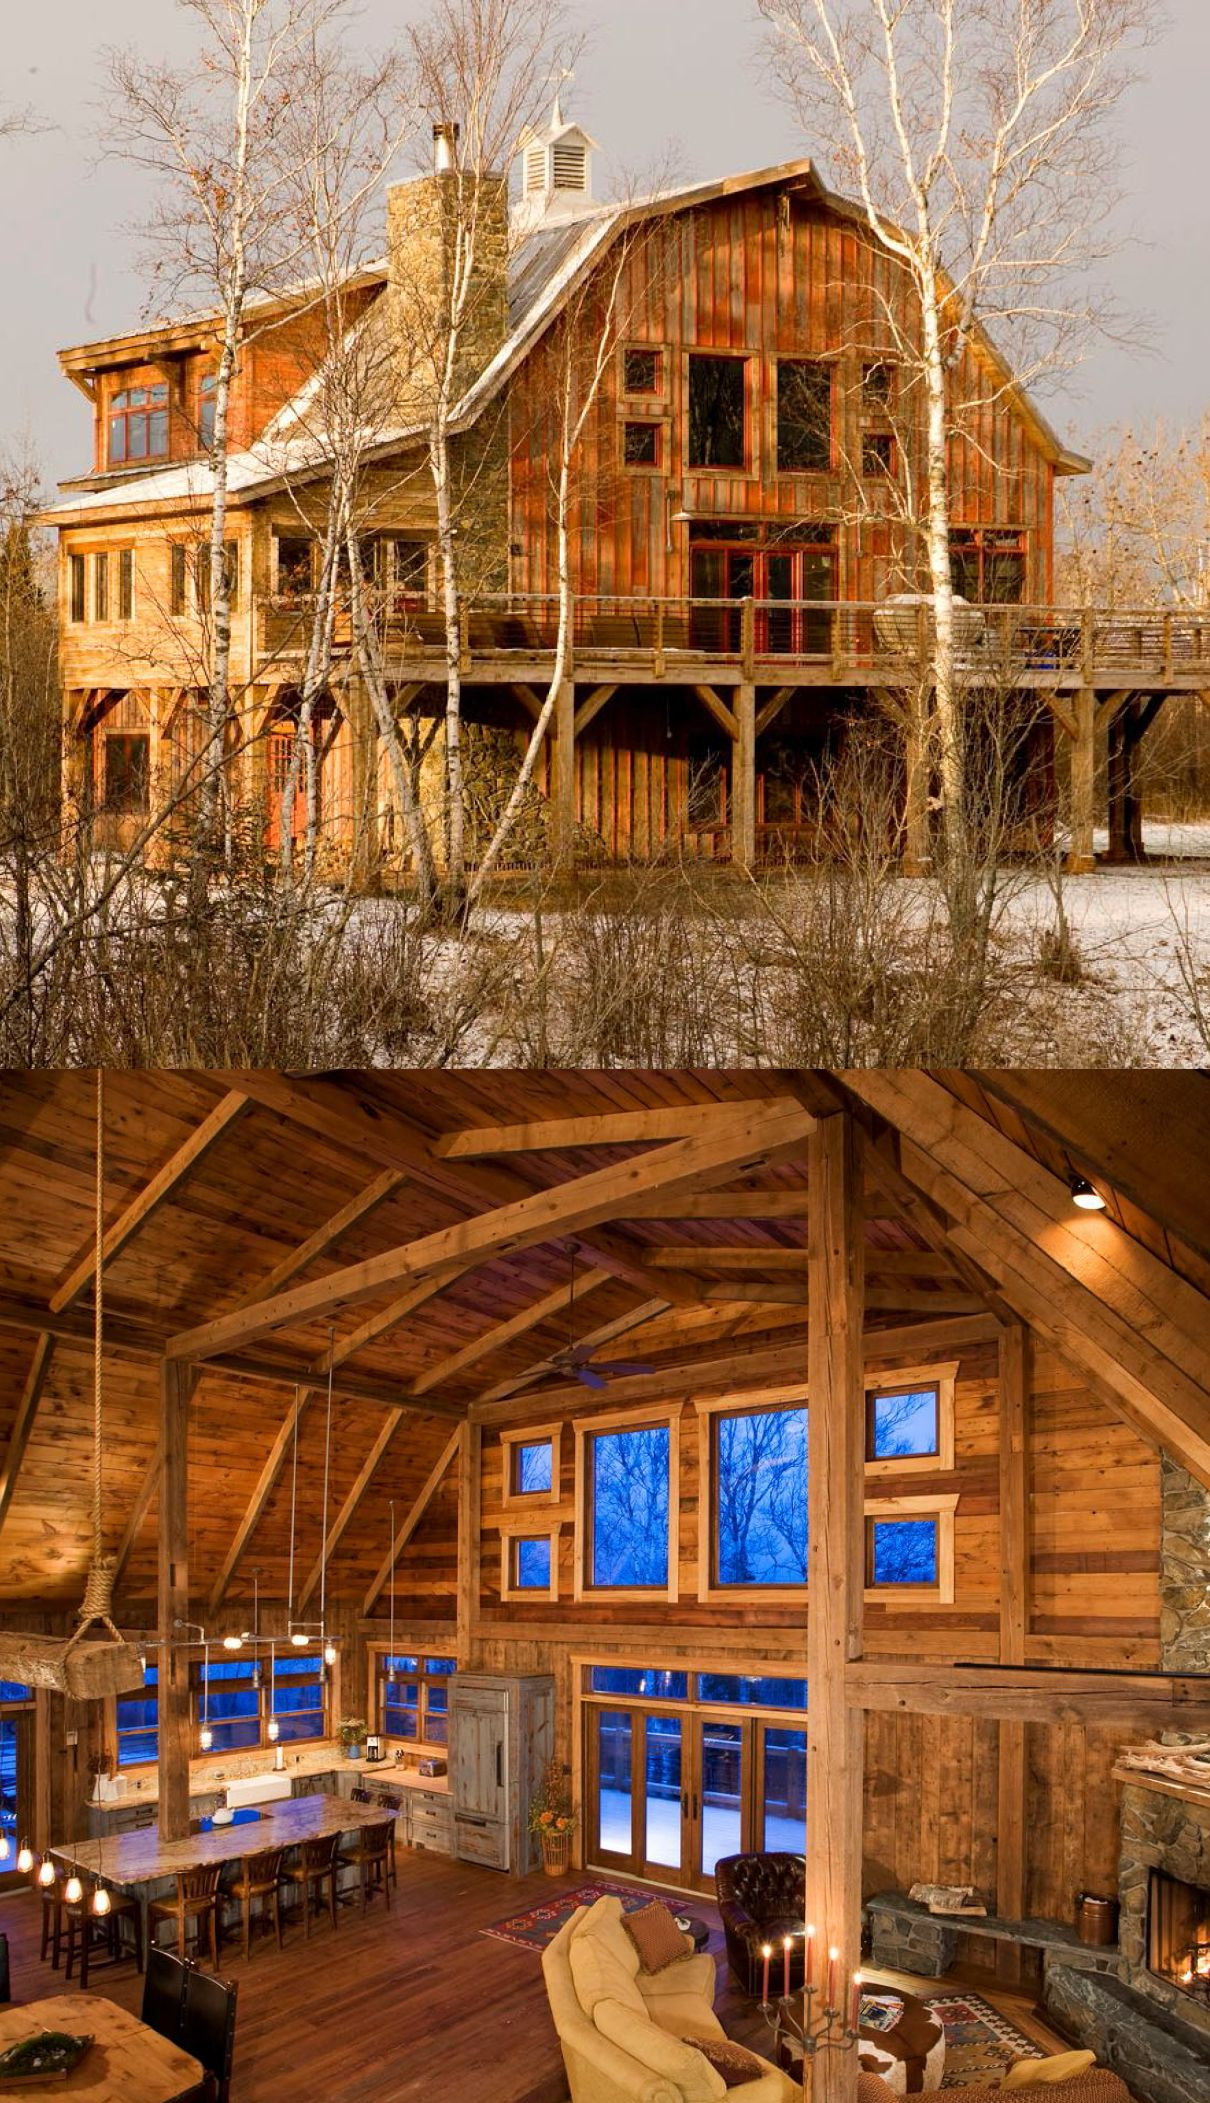 Time Worn Wood Reclaimed Barn Wood Planks For Interior And Exterior Use Rustic Wood With Character And A History Barn House Plans Barn House Kits Log Homes